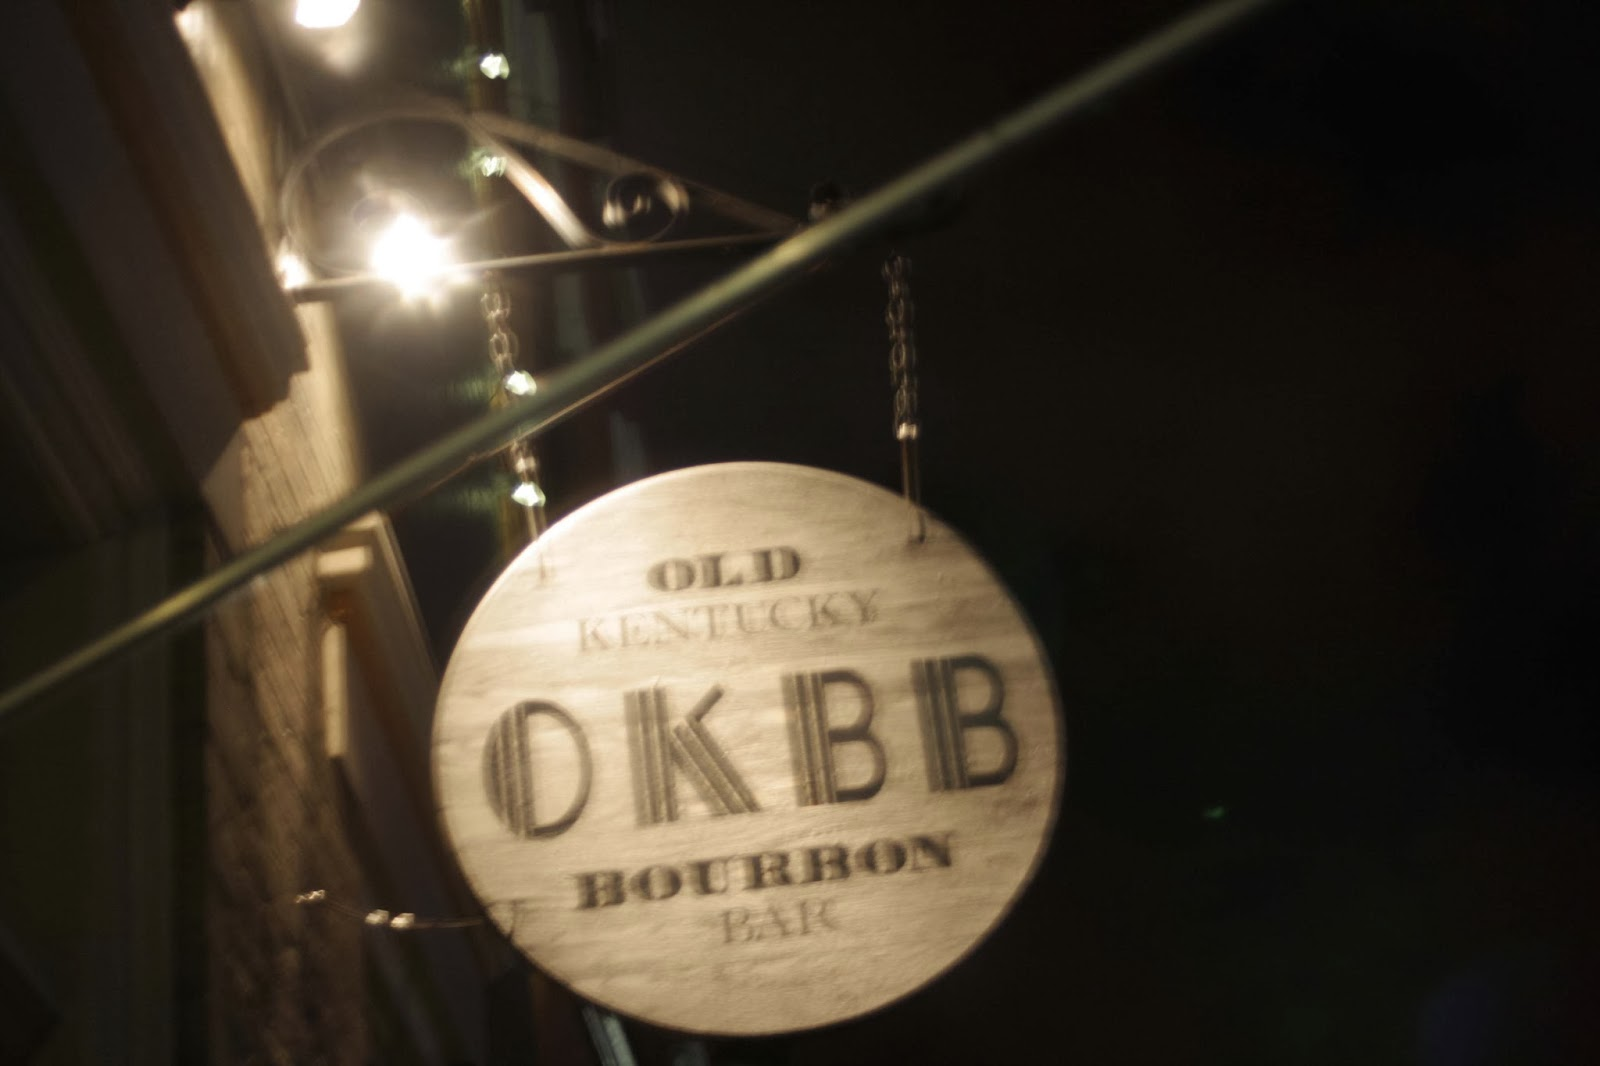 old kentucky bourbon bar, covington, kentucky